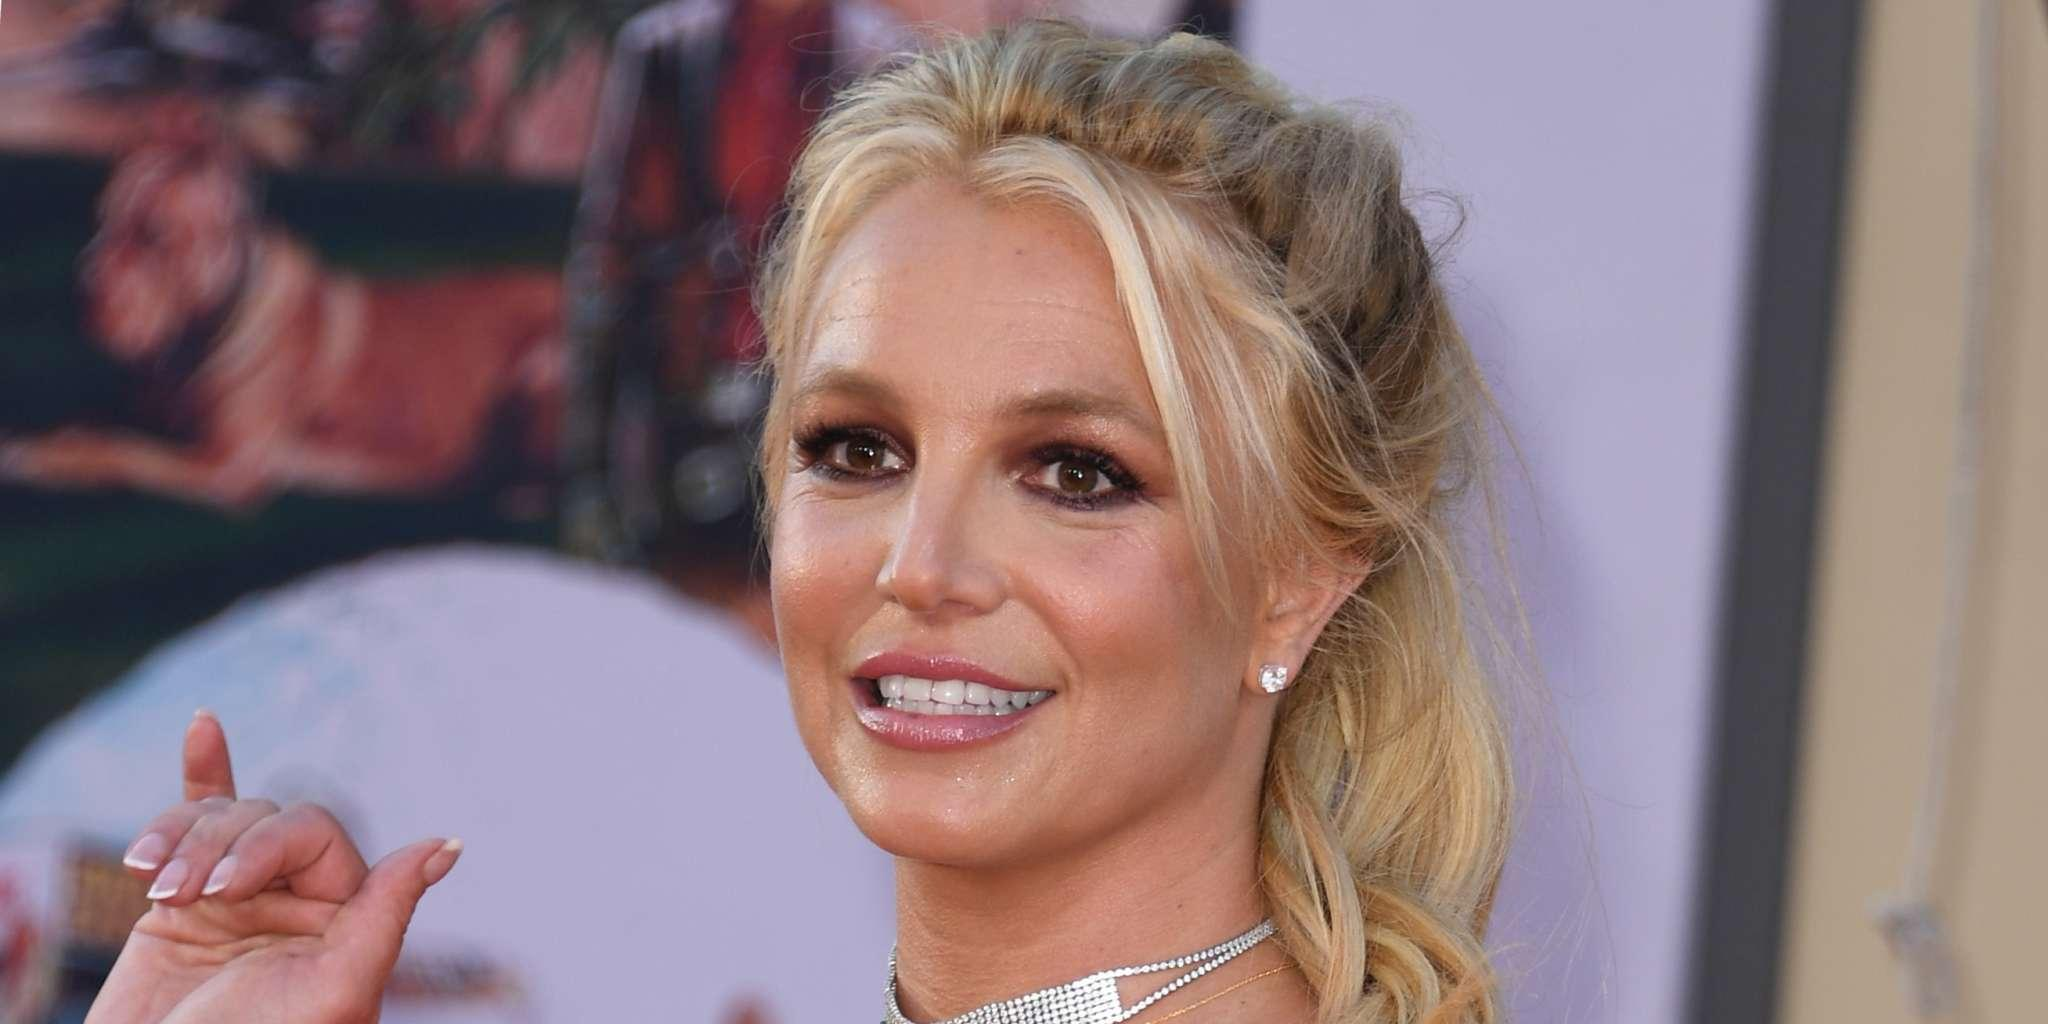 Britney Spears Called The Police And Reported Herself As A Victim Of Abuse The Night Before Her Public Testimony, Source Says